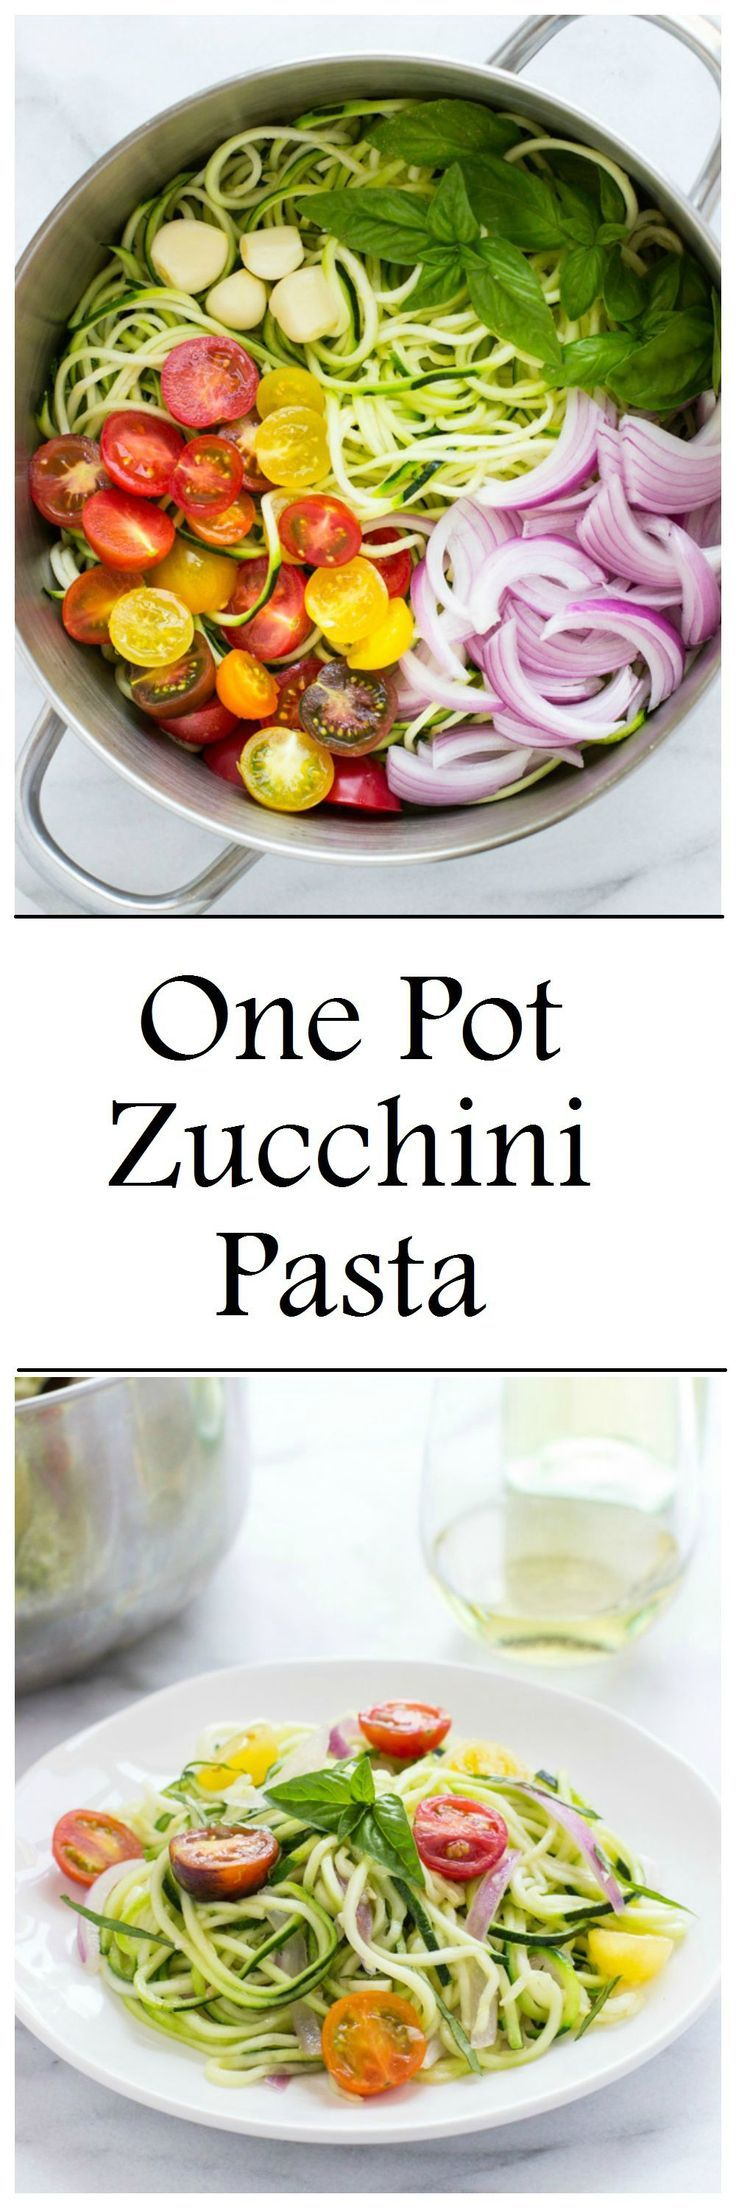 One Pot Zucchini Pasta is an easy, light and healthy meal made from summer's finest produce. It's vegan and gluten-free + it comes together in less than 20 minutes!